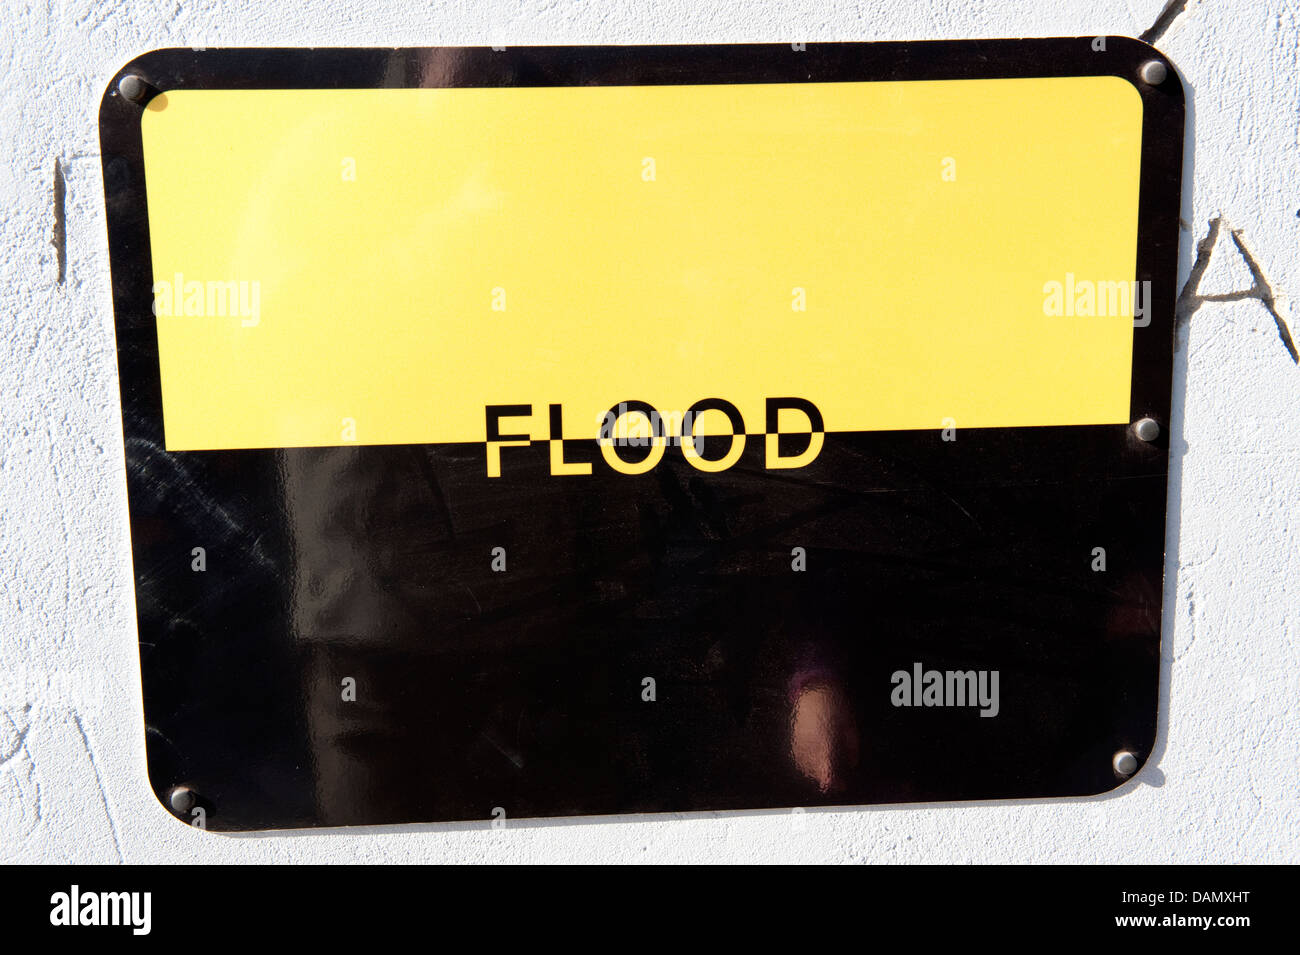 Flood Sign Yellow Black Warning Oblong Rectangle - Stock Image